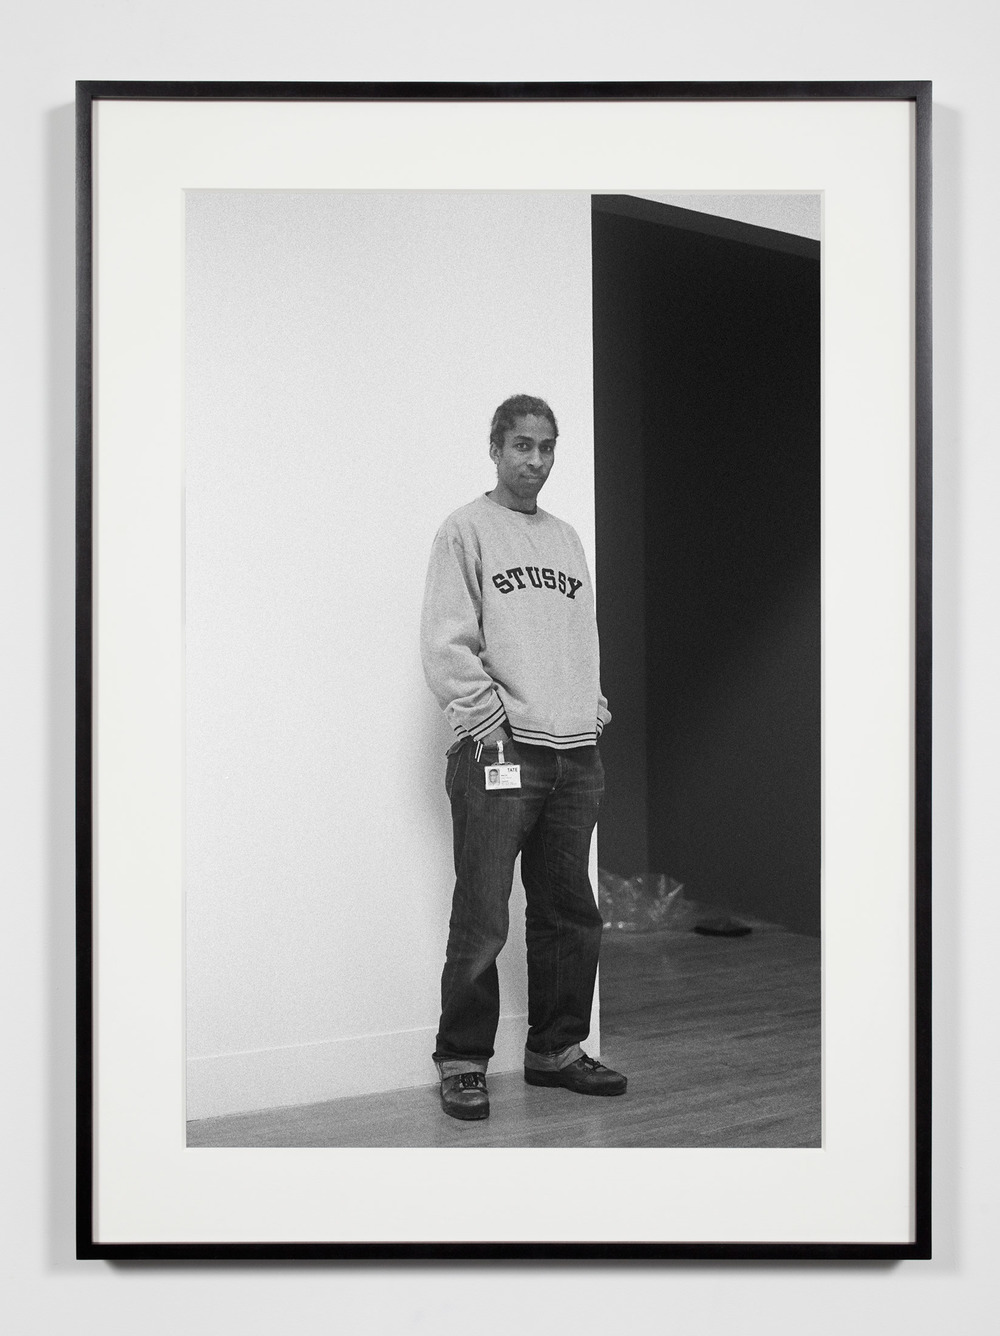 Museum Preparator, London, United Kingdom, January 30, 2009    2011   Epson Ultrachrome K3 archival ink jet print on Hahnemühle Photo Rag paper  36 3/8 x 26 3/8 inches   Industrial Portraits, 2008–